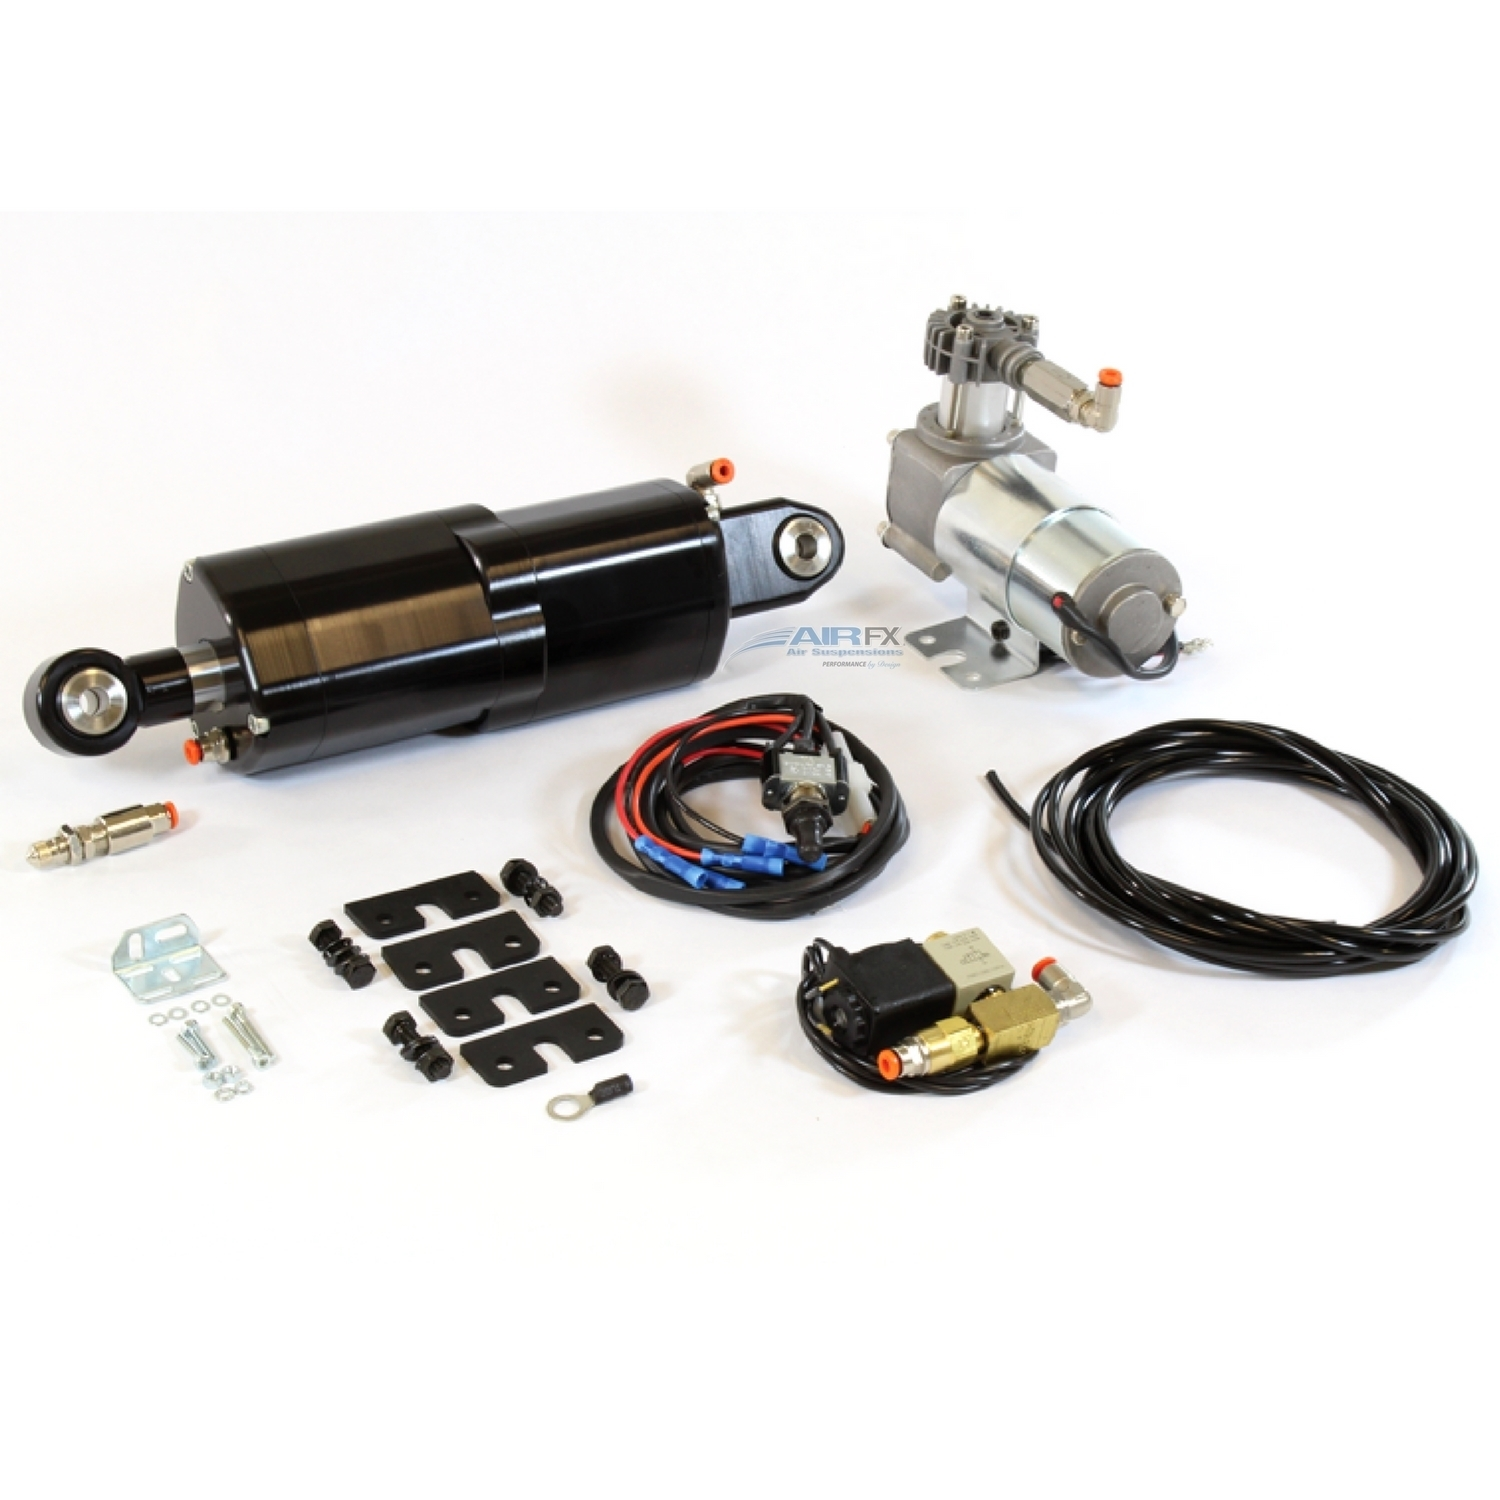 Rear Air Ride Kit for M109 2006-2018